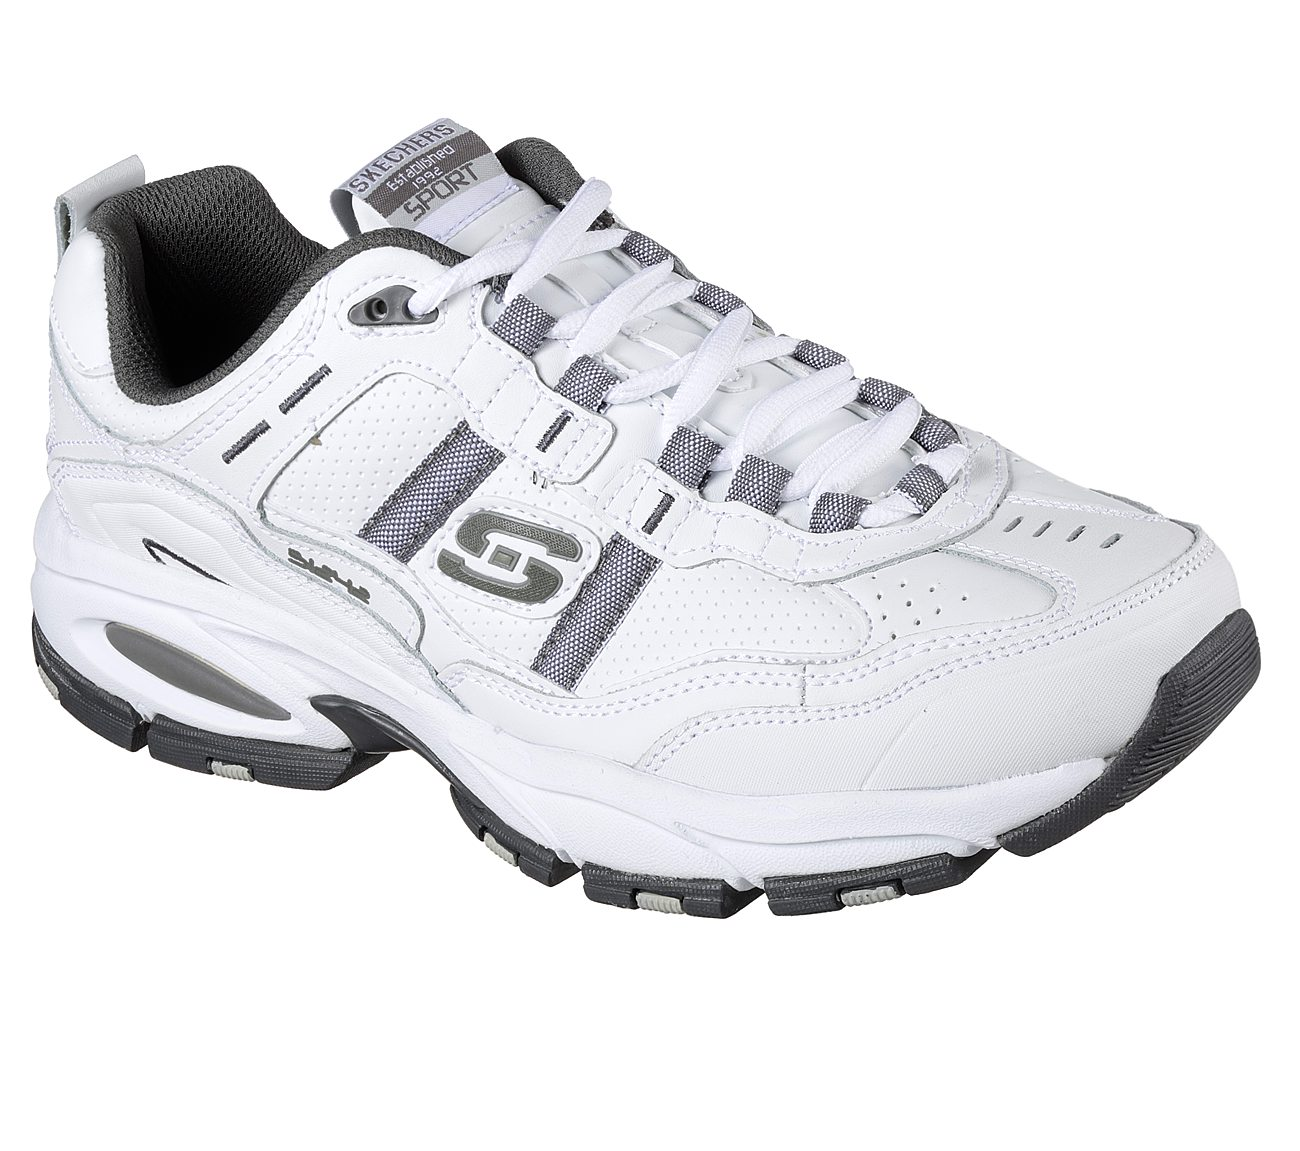 d1f35c6b6e2a Buy SKECHERS Vigor 2.0 - Serpentine SKECHERS Sport Shoes only £59.00